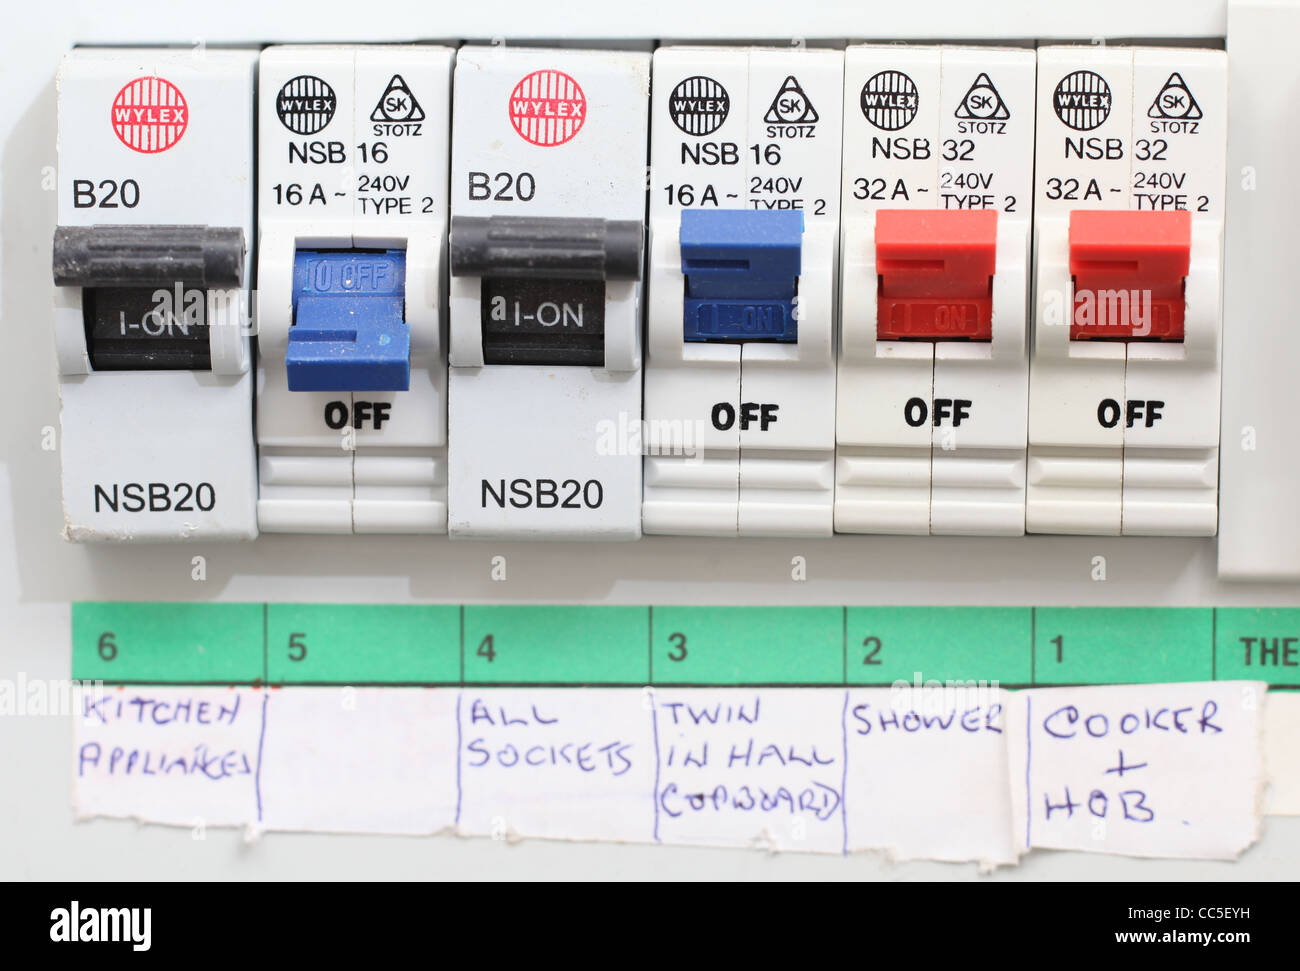 fuse box tripping lights html with Fuse Box Switch Off on 40735 Rrw Wiring Diagram Leviton as well Turning Fuse Box Off To Water Heater Causes also 2648004 516290 additionally Fuse Box Trip Switch further My Fuse Box In Garage Keeps Tripping Switch.